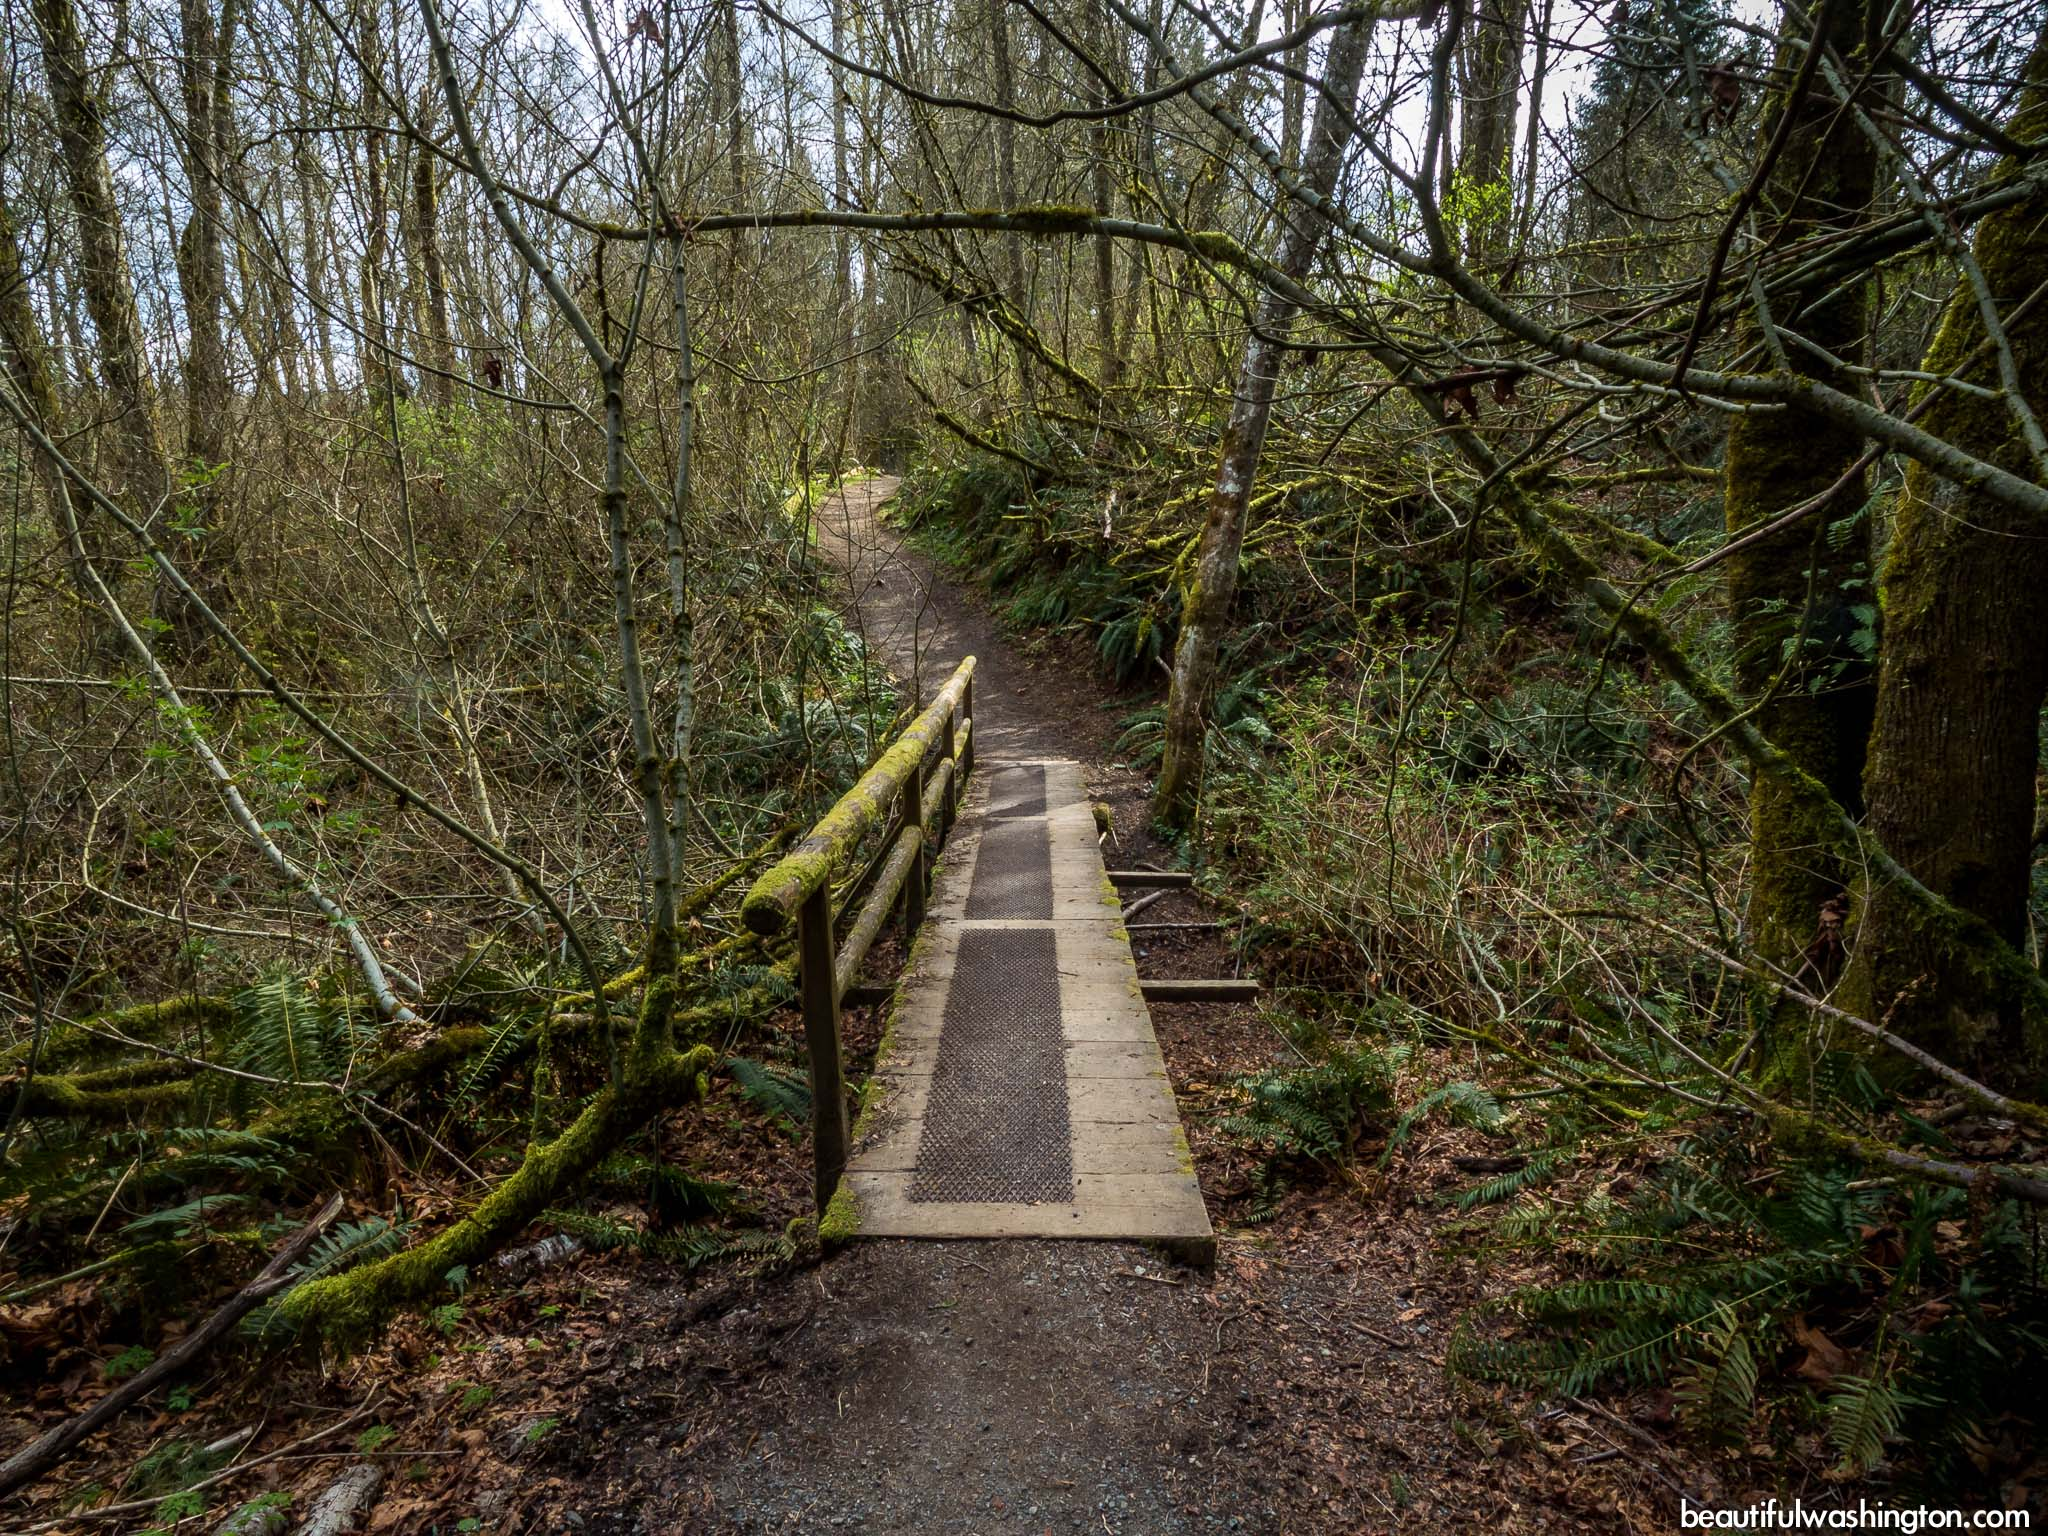 Photo from King County, Issaquah, Wildside Trail - De Leo Wall Trail